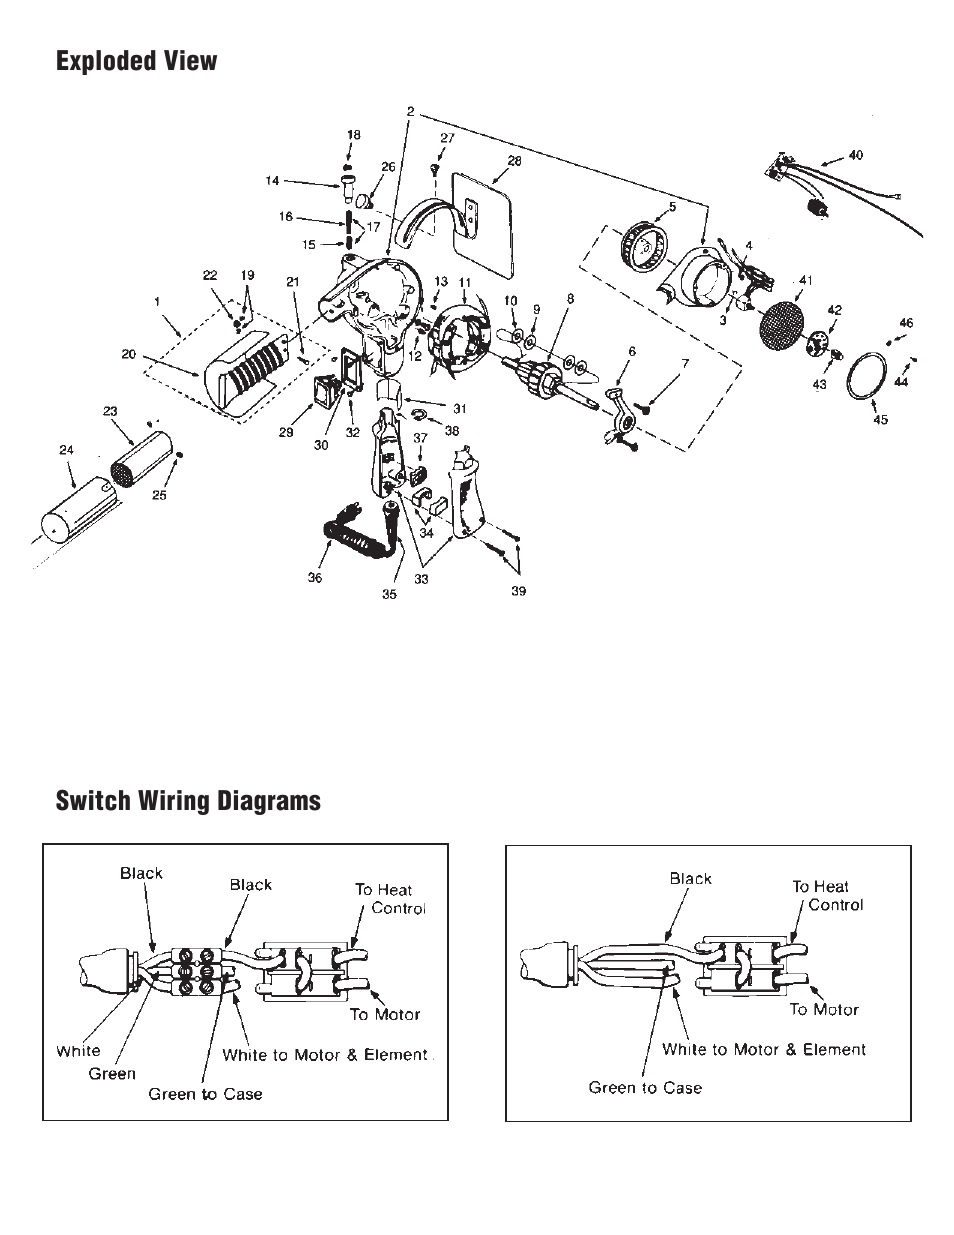 exploded view switch wiring diagrams